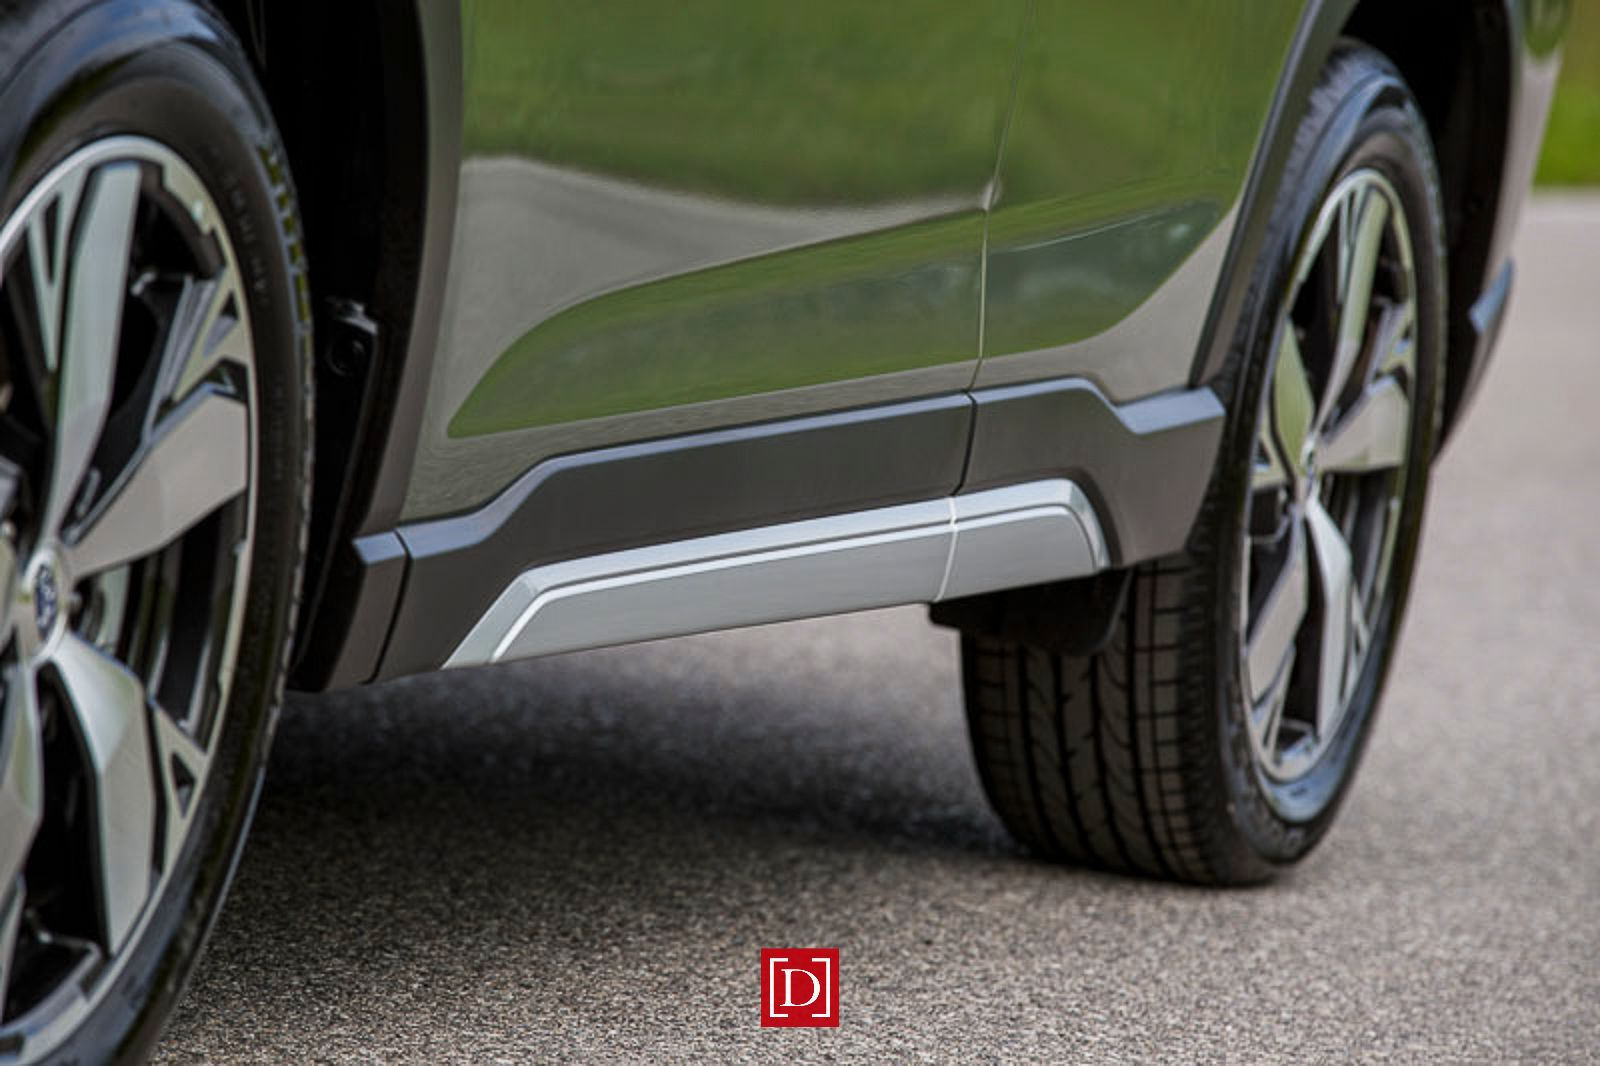 forester-e-boxer_low-023-22747